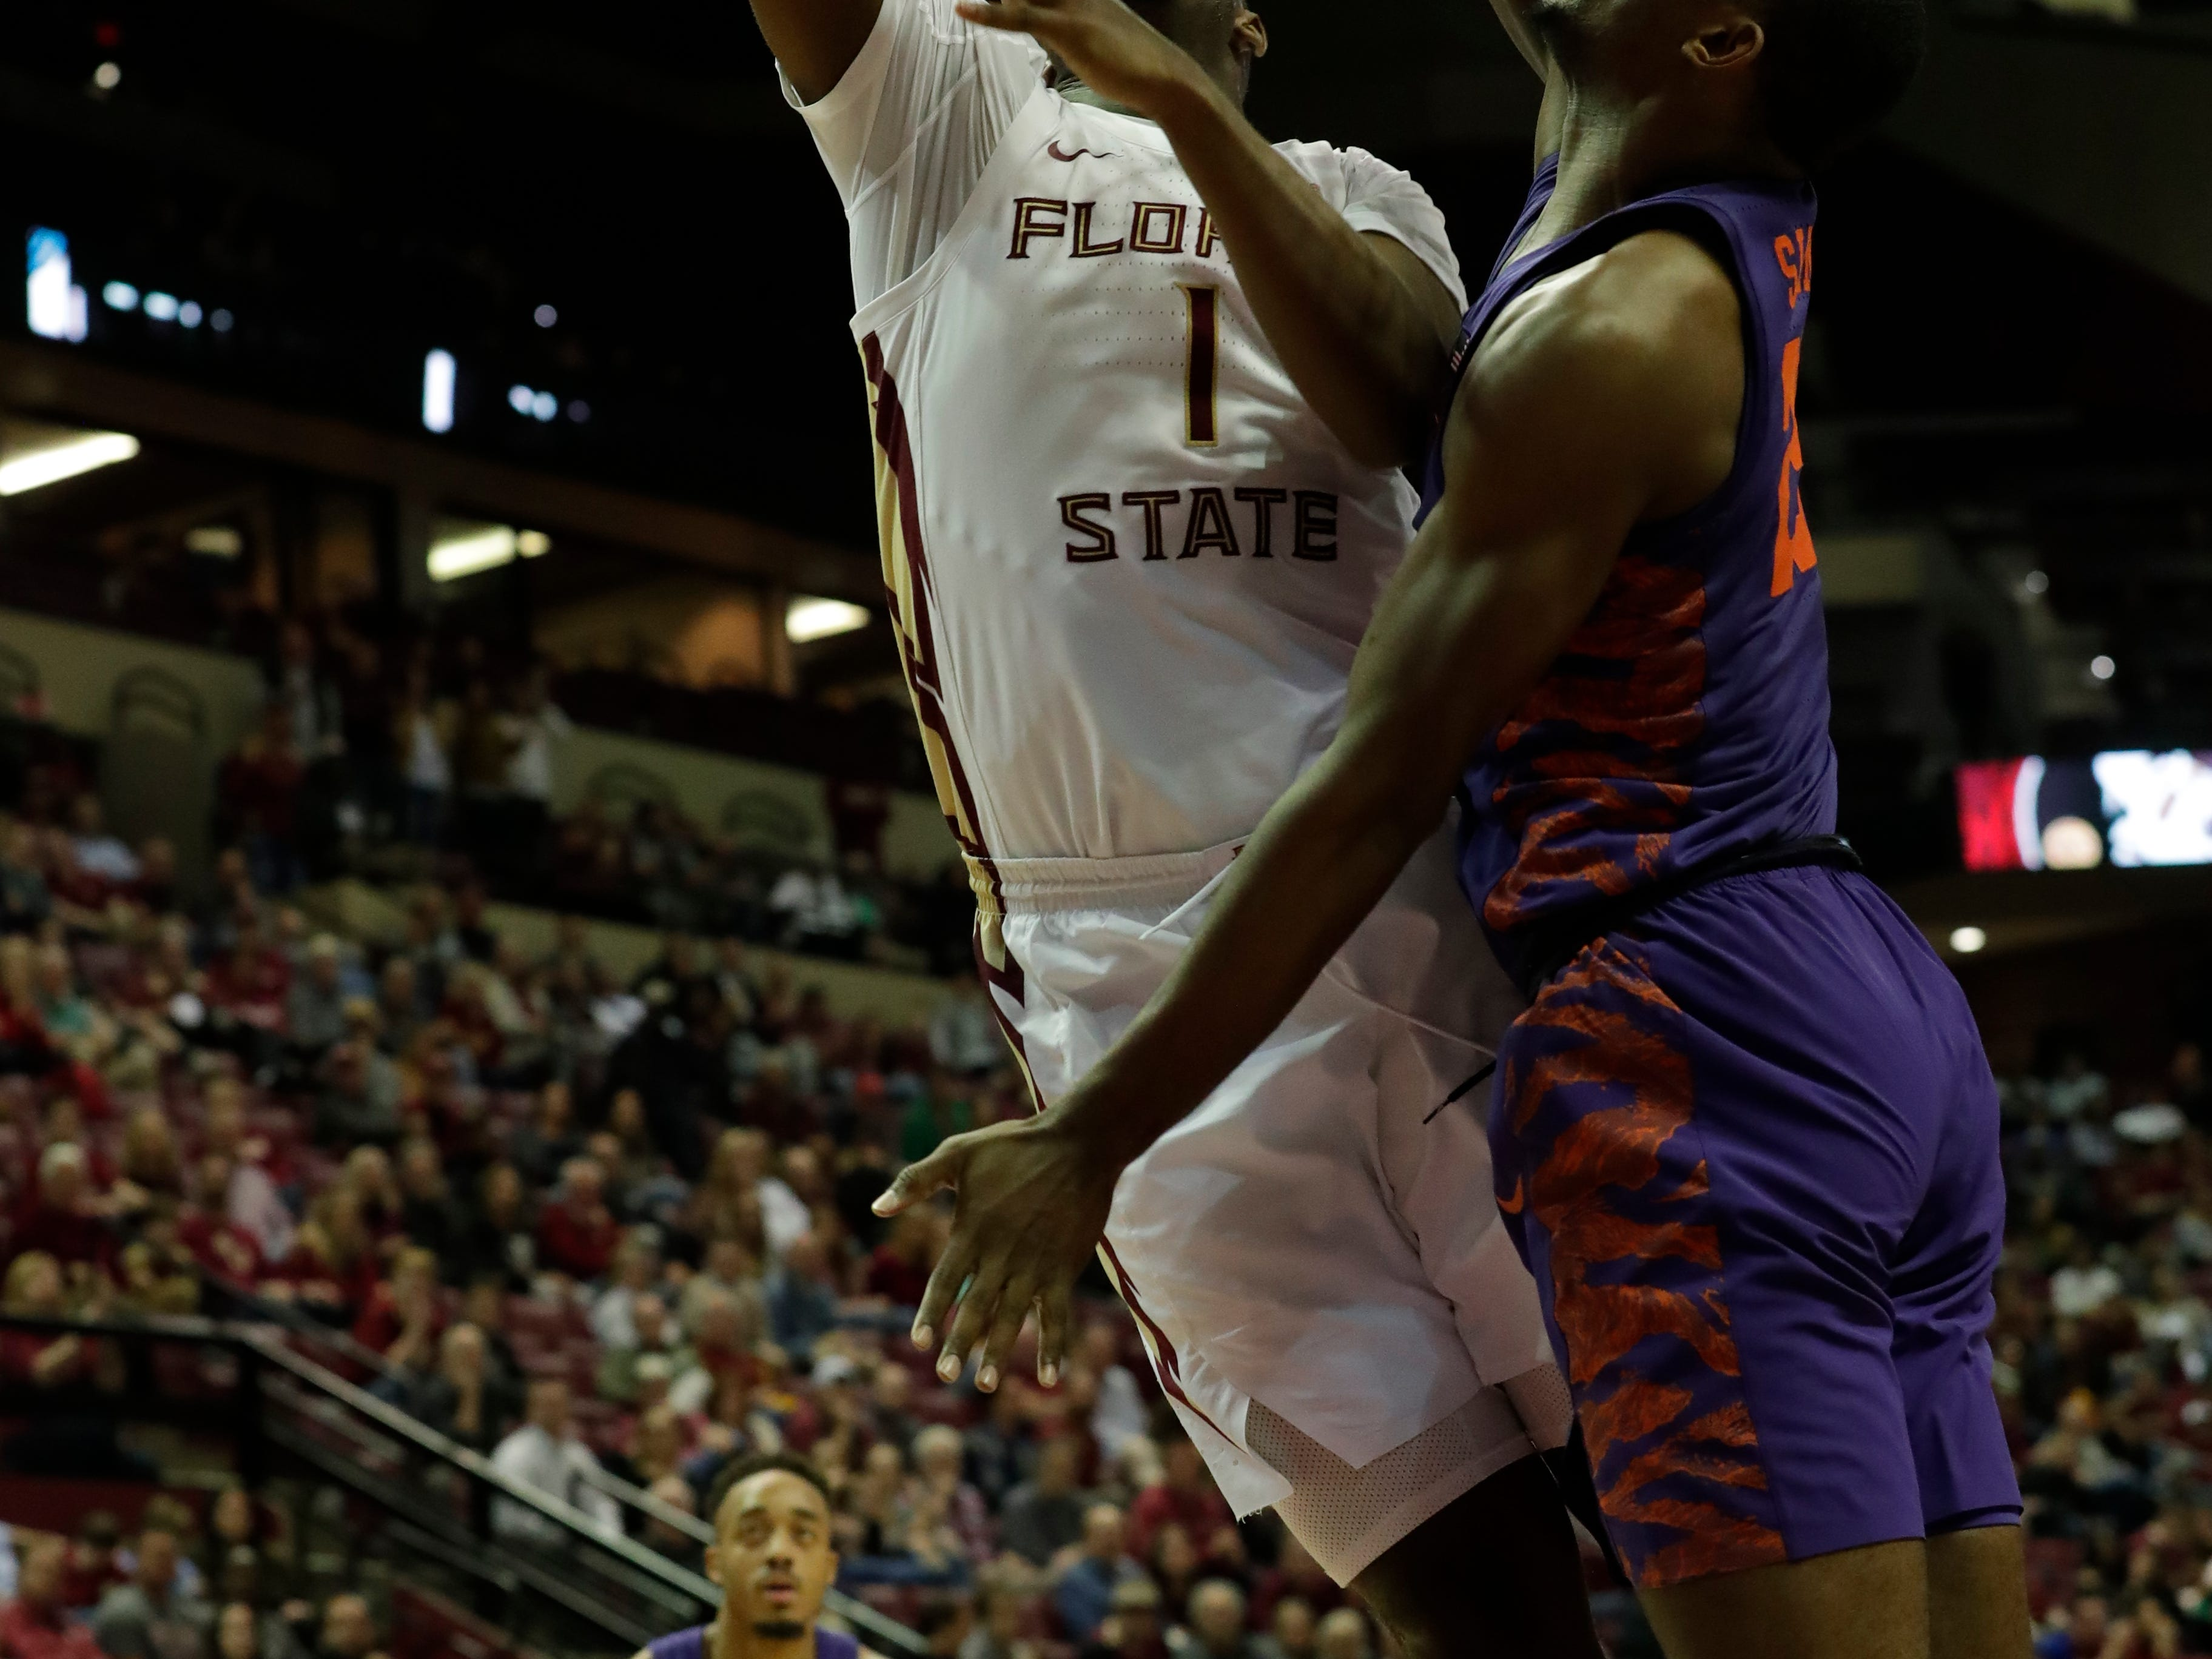 Florida State Seminoles forward Raiquan Gray (1) goes in for a layup. The Florida State Seminoles face off against the Clemson Tigers at the Tucker Civic Center, Tuesday, Jan. 22, 2019.